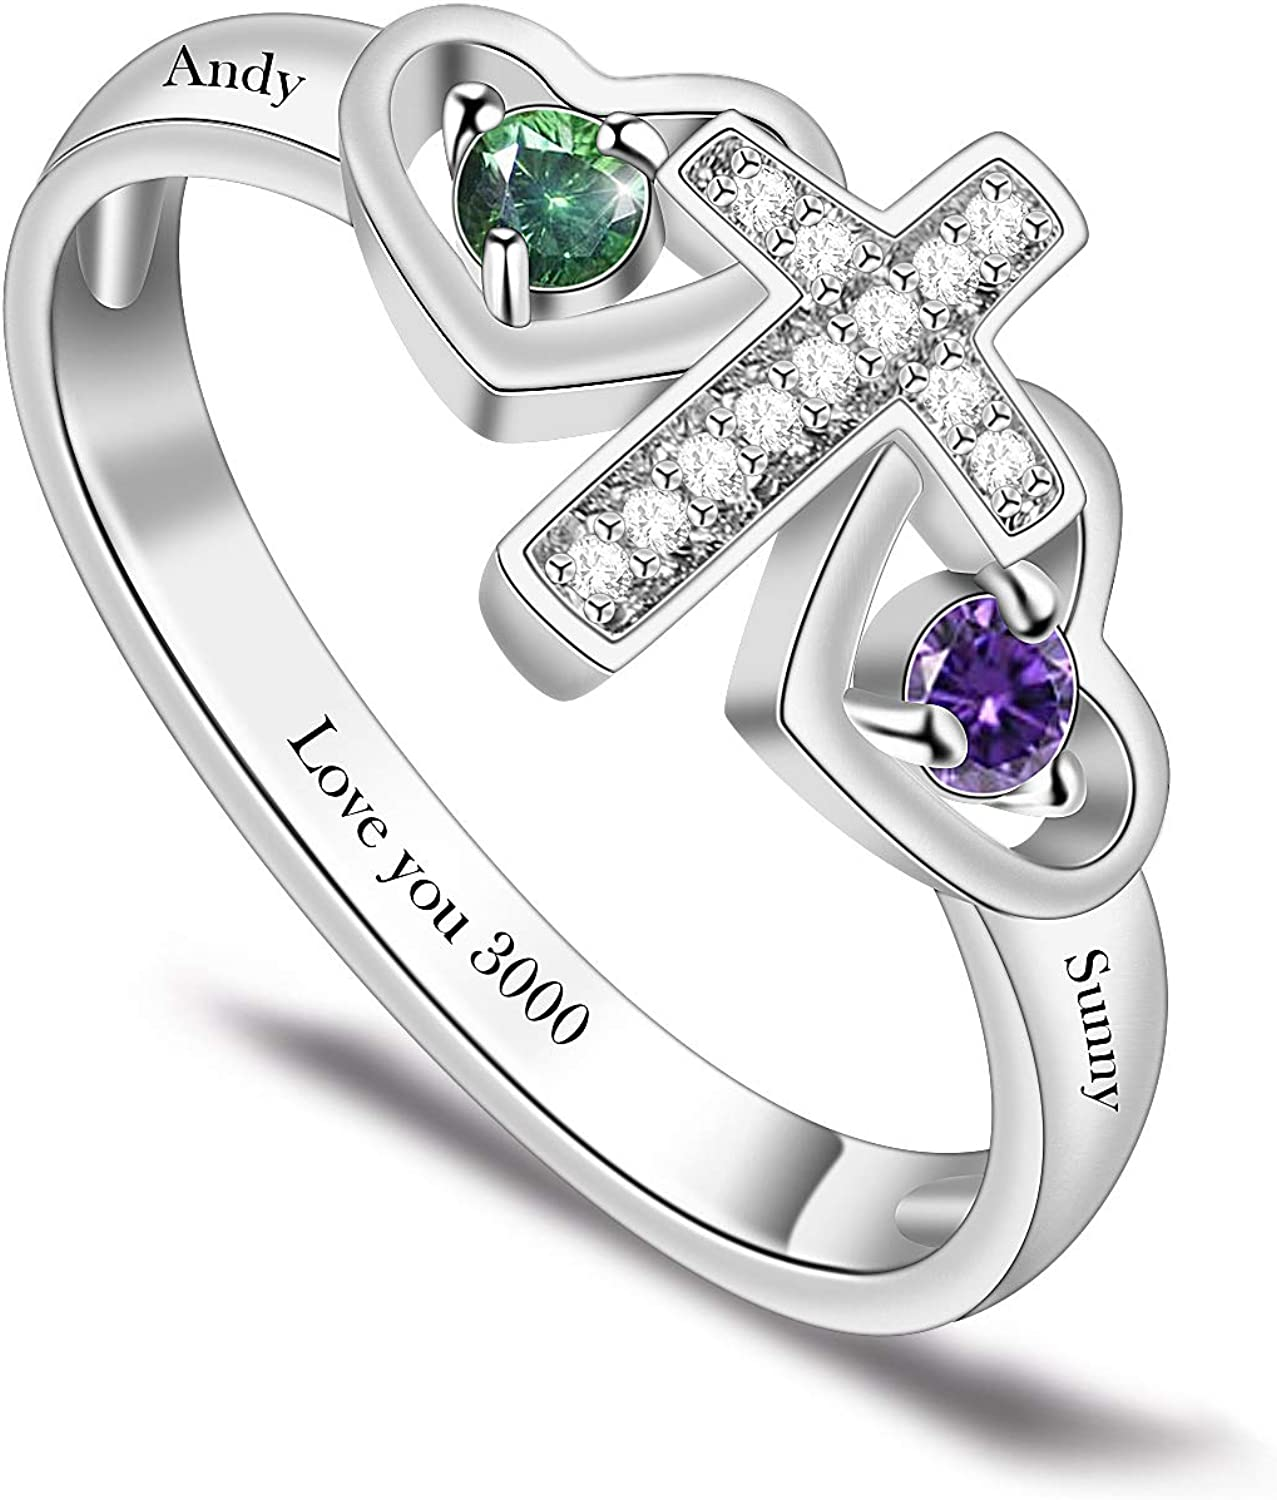 BAUMA AUTO Mothers Ring Personalized Mothers Rings with 1/2/3/4/5/6/7/8 Simulated Birthstones for Grandmother Mother Meaningful Anniversary Rings for Women Wife